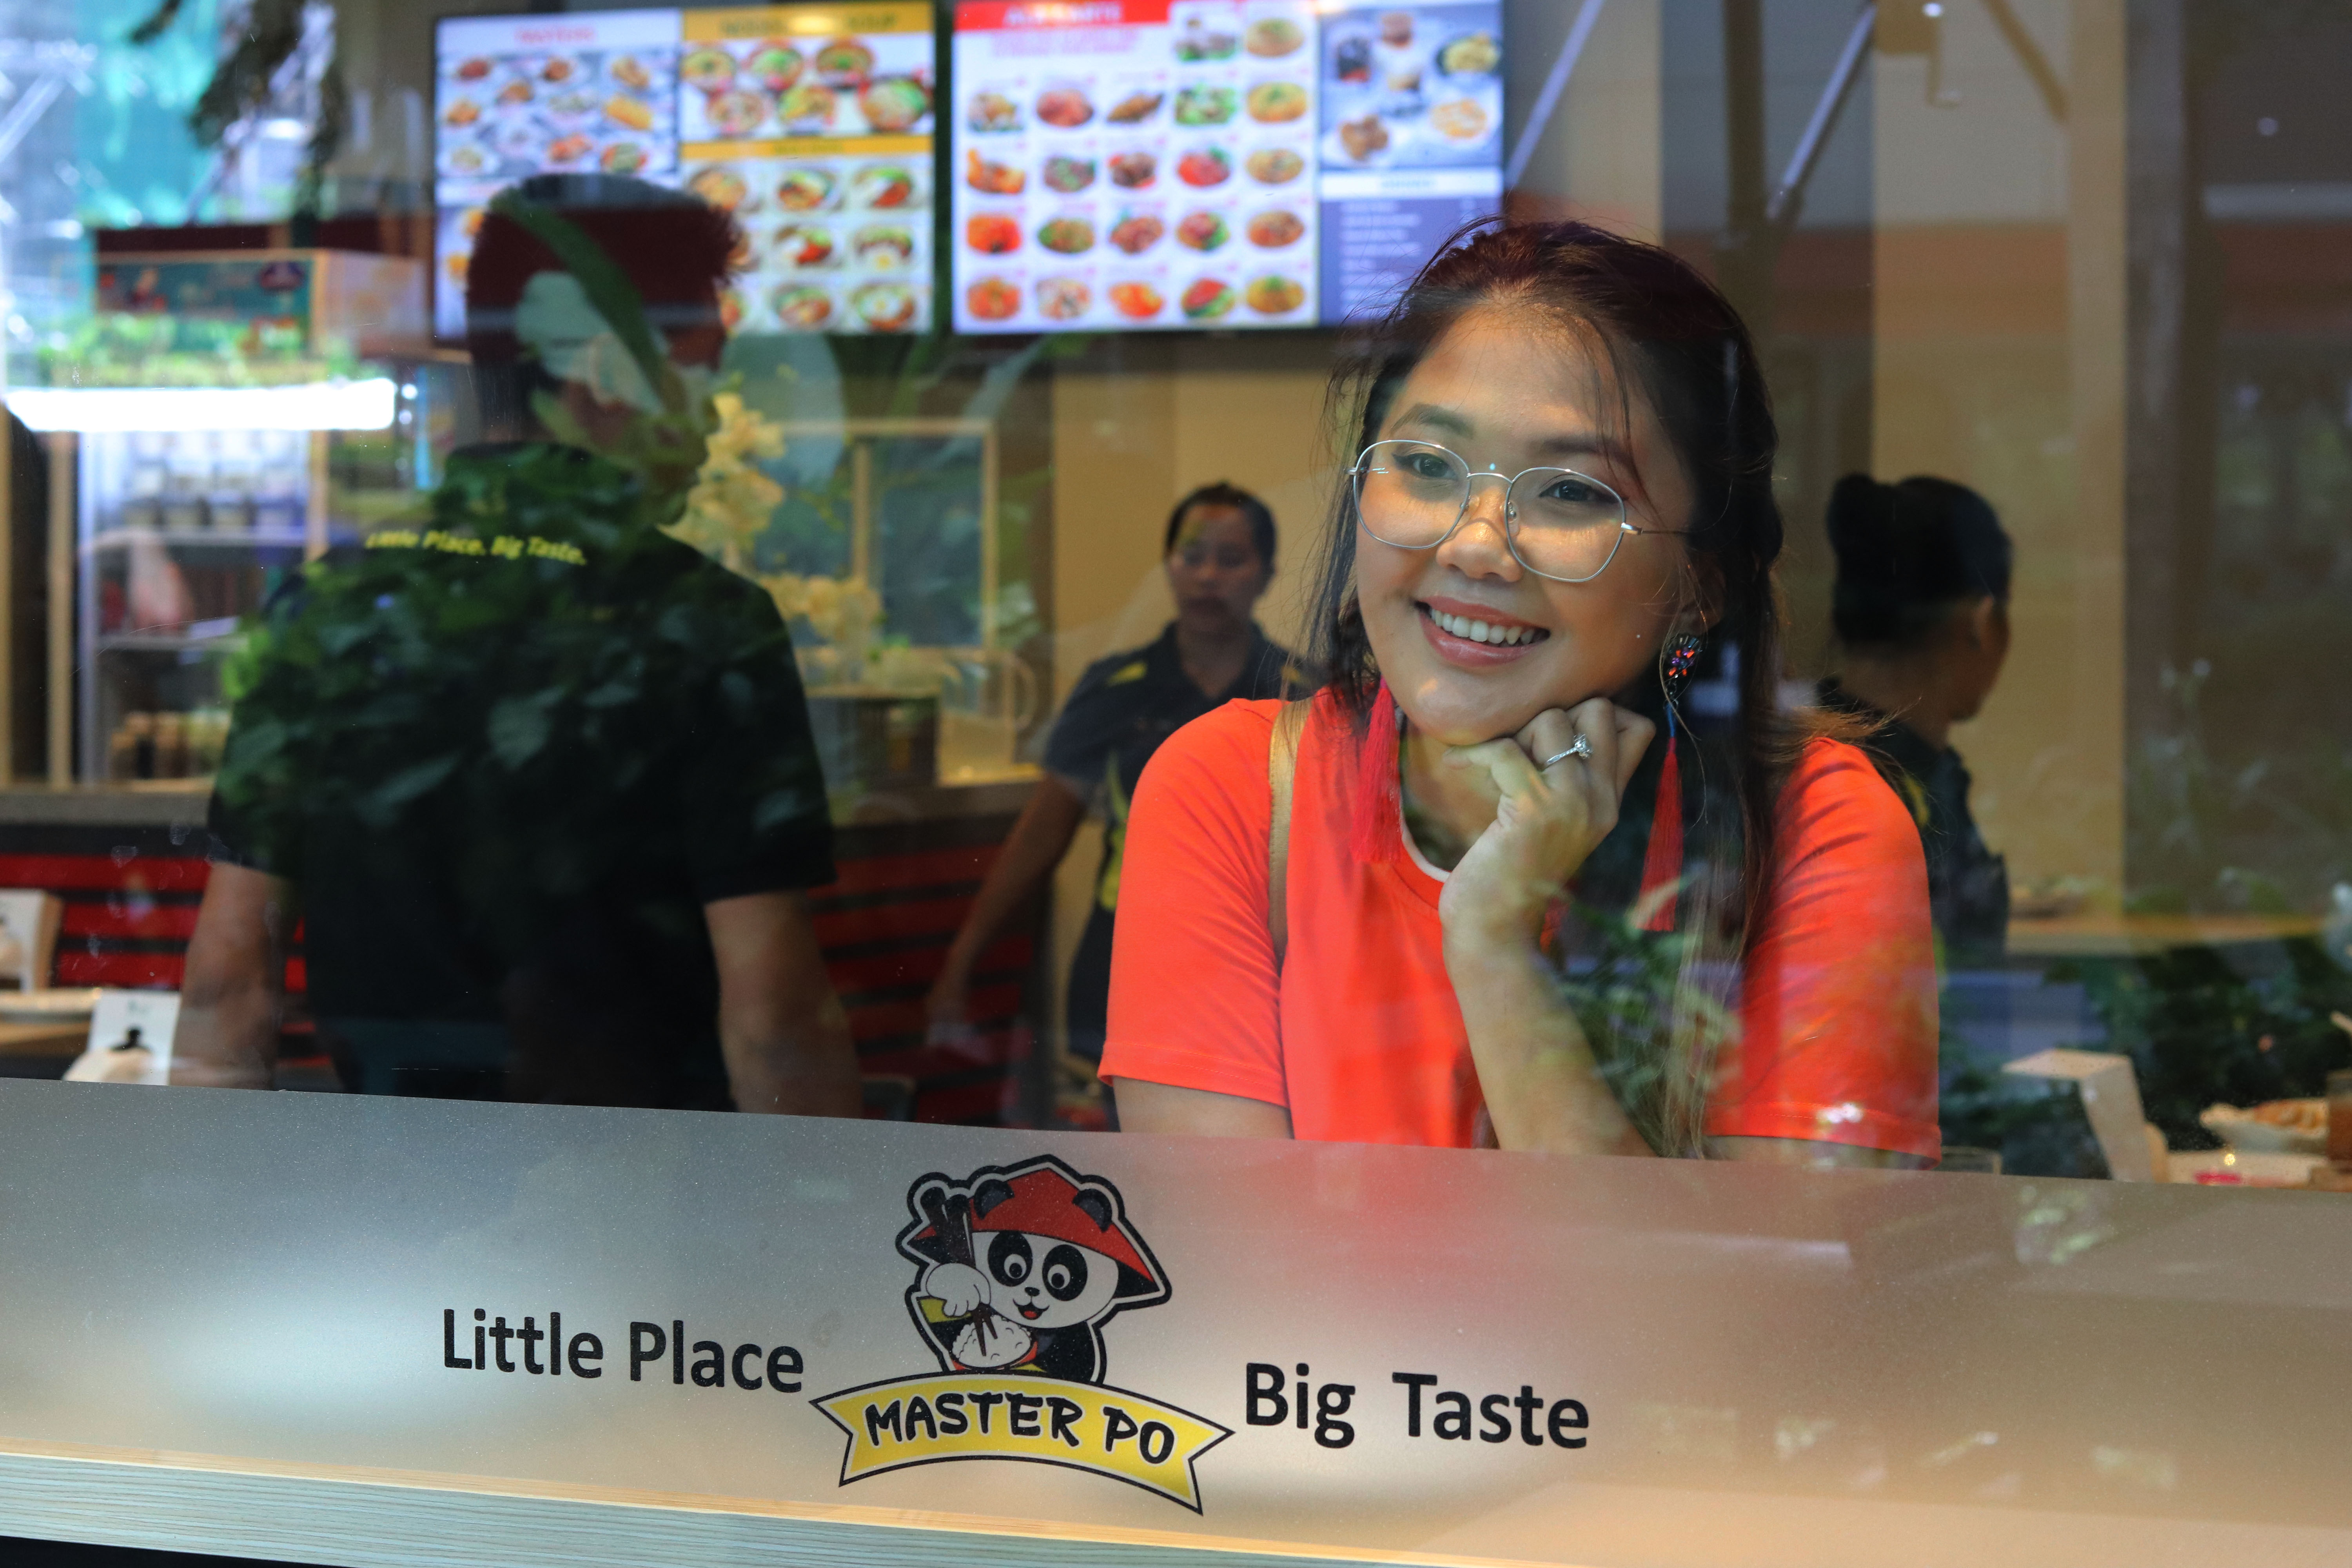 Master Po: Little Place, Big Taste- Authentic Chinese Food at Your Convenience